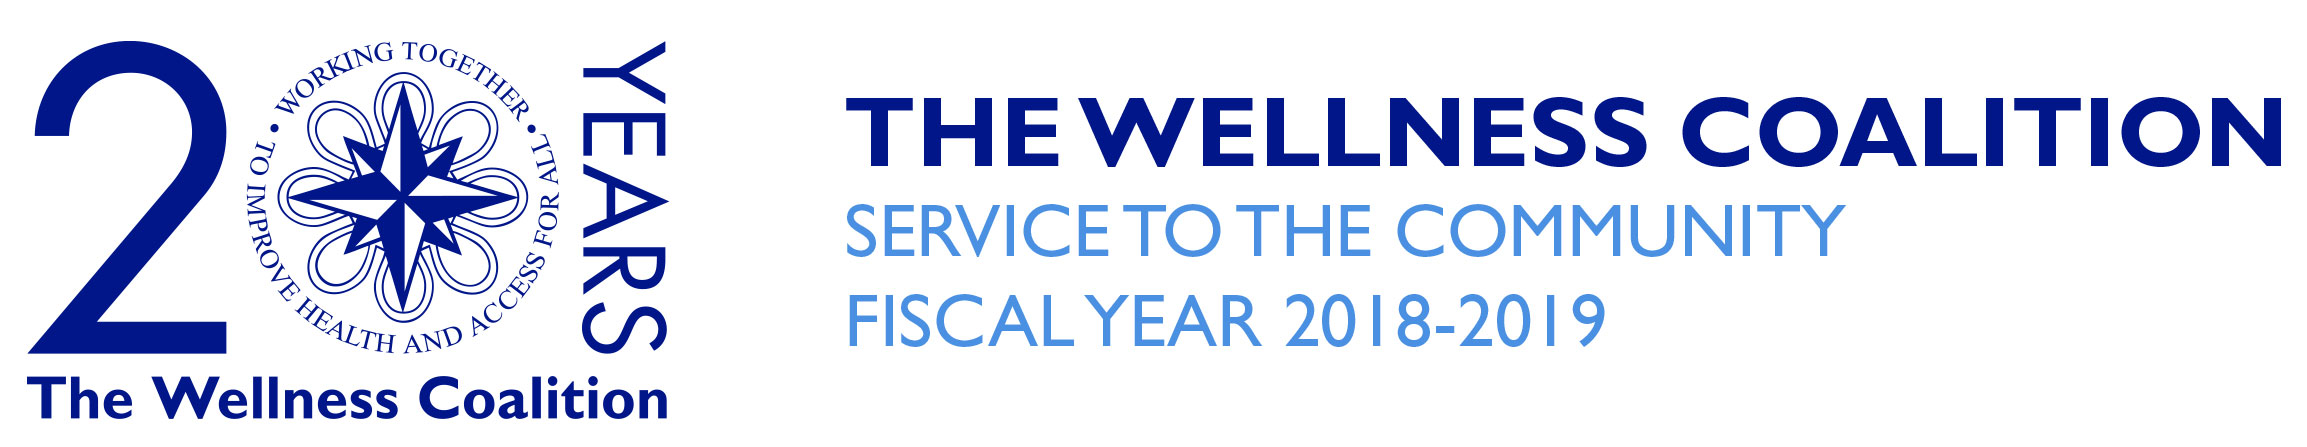 Wellness Coalition logo featuring the words 20 Years , with a services to the community in fiscal year 2018-2019